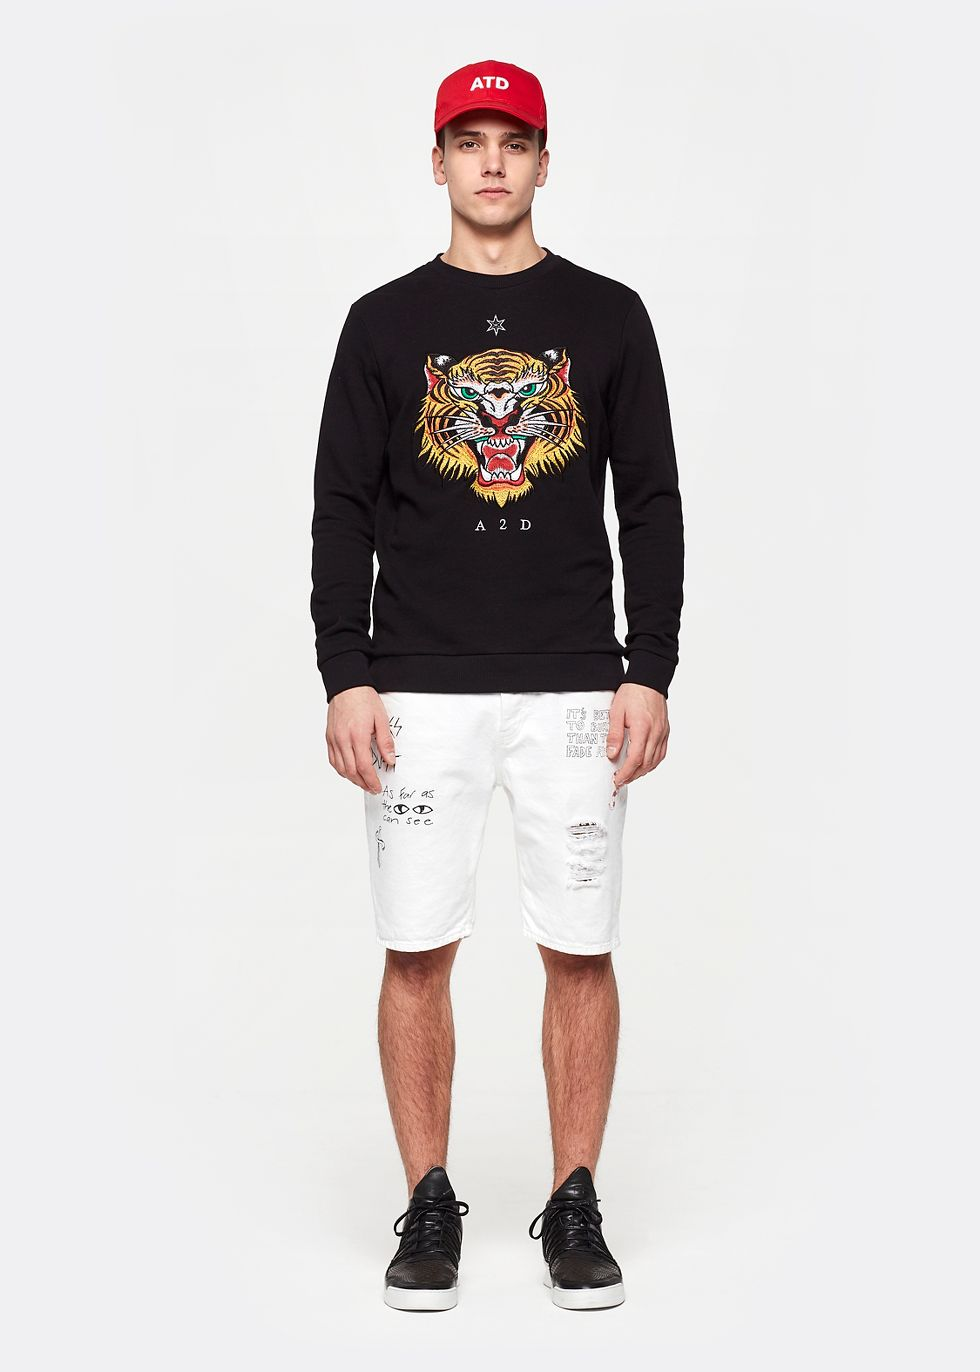 Tiger sweater   The Sting